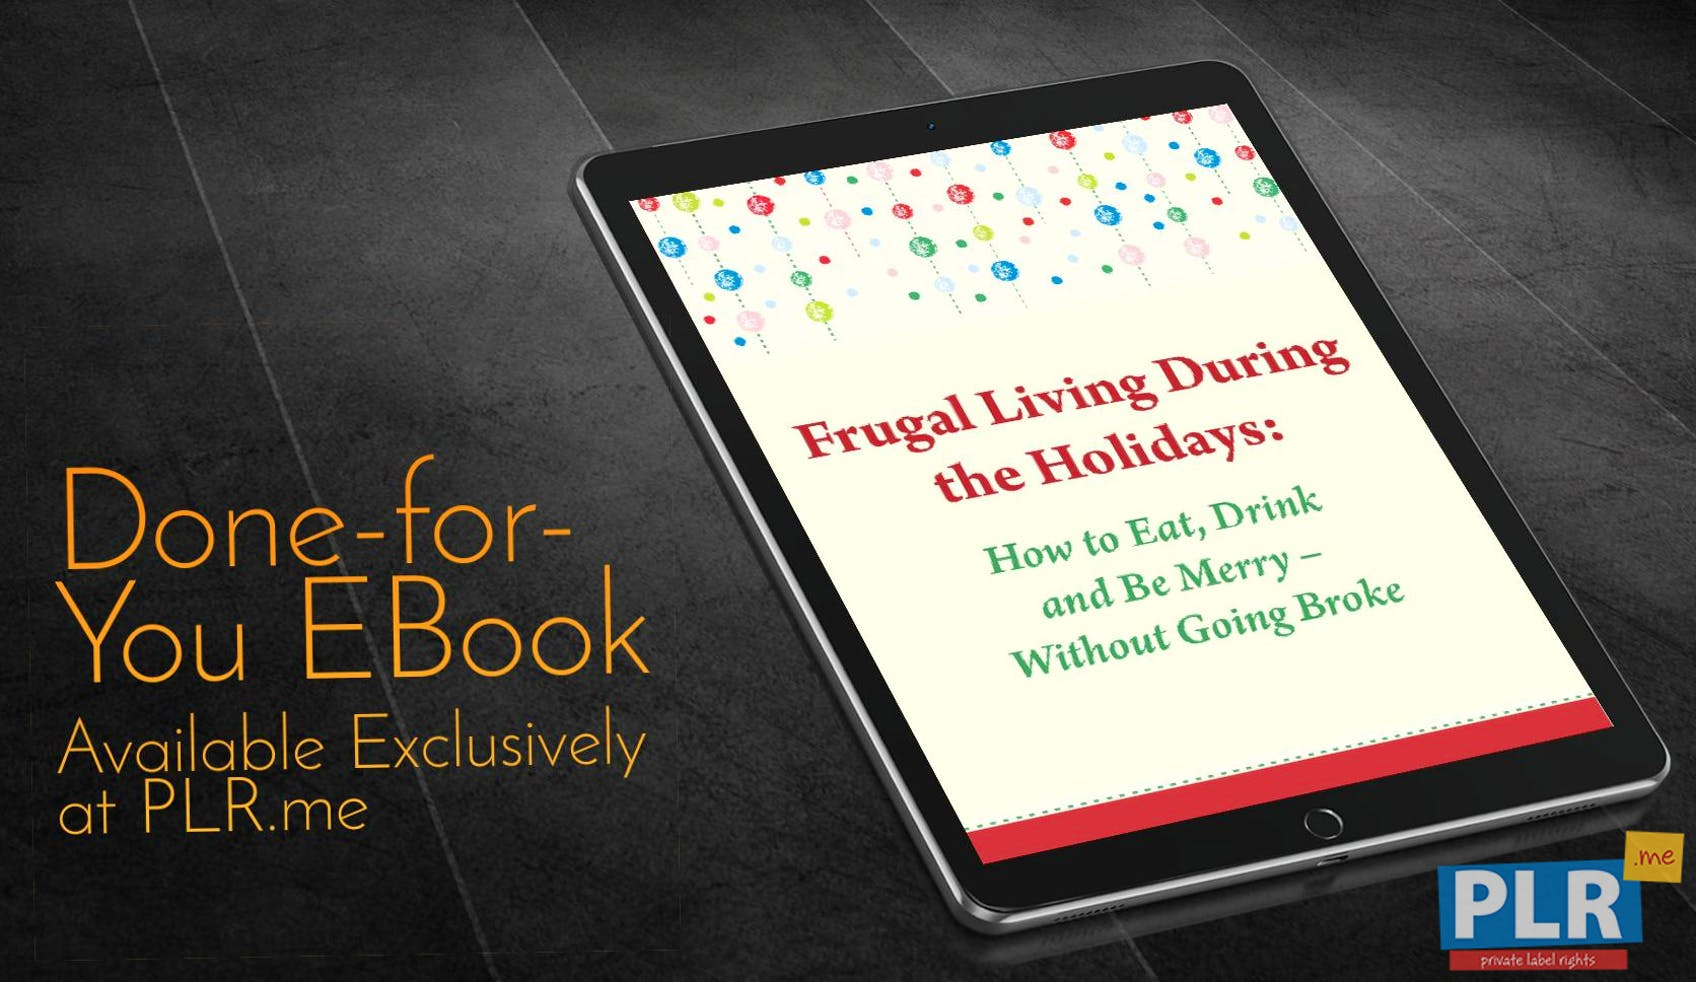 Frugal Living During The Holidays